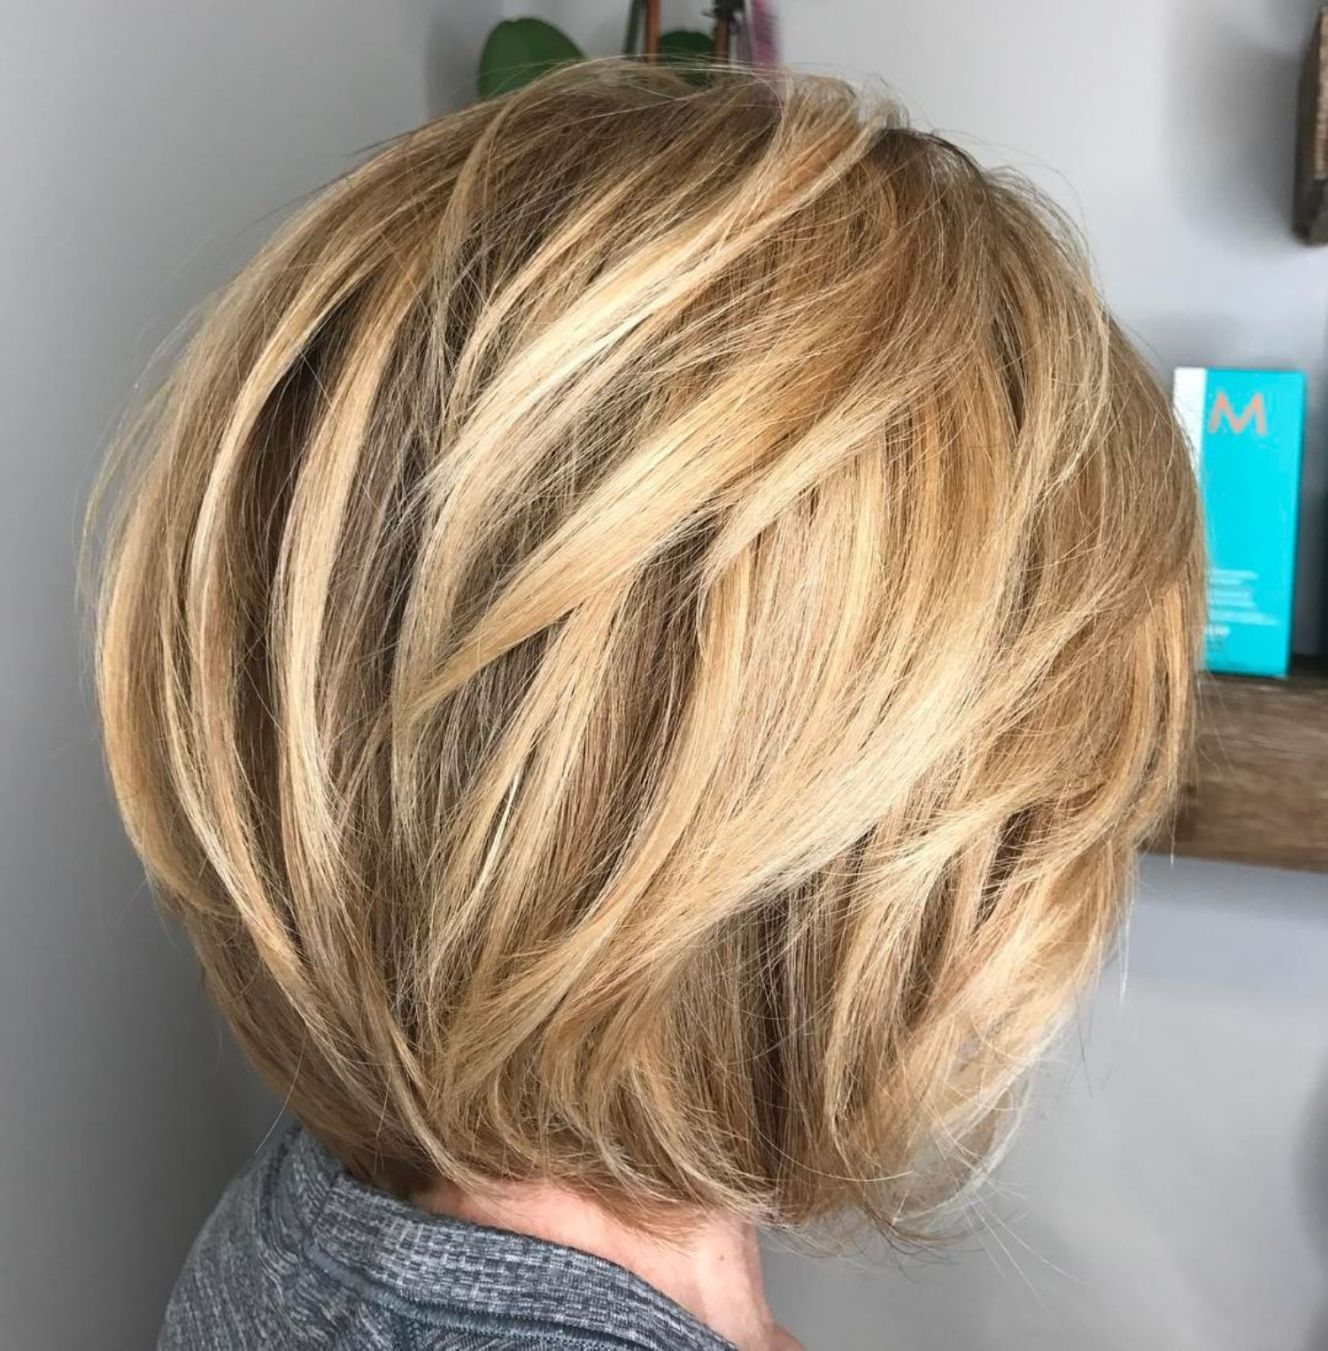 60 Classy Short Haircuts and Hairstyles for Thick Hair | Short hairstyles  for thick hair, Short hair with layers, Hair styles